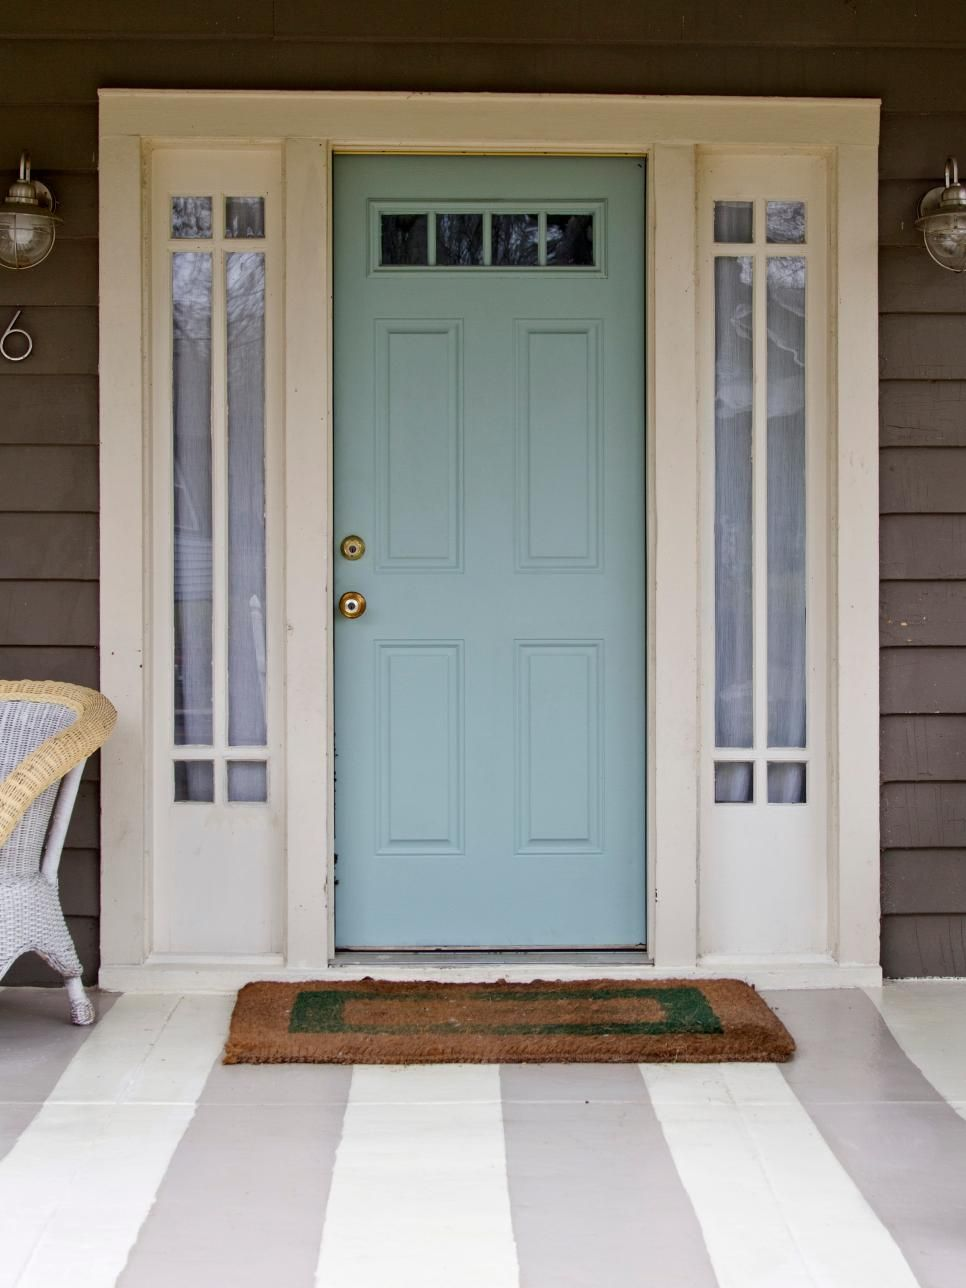 Wythe Blue Sherwin Williams Popular Colors To Paint An Entry Door Curb Appeal